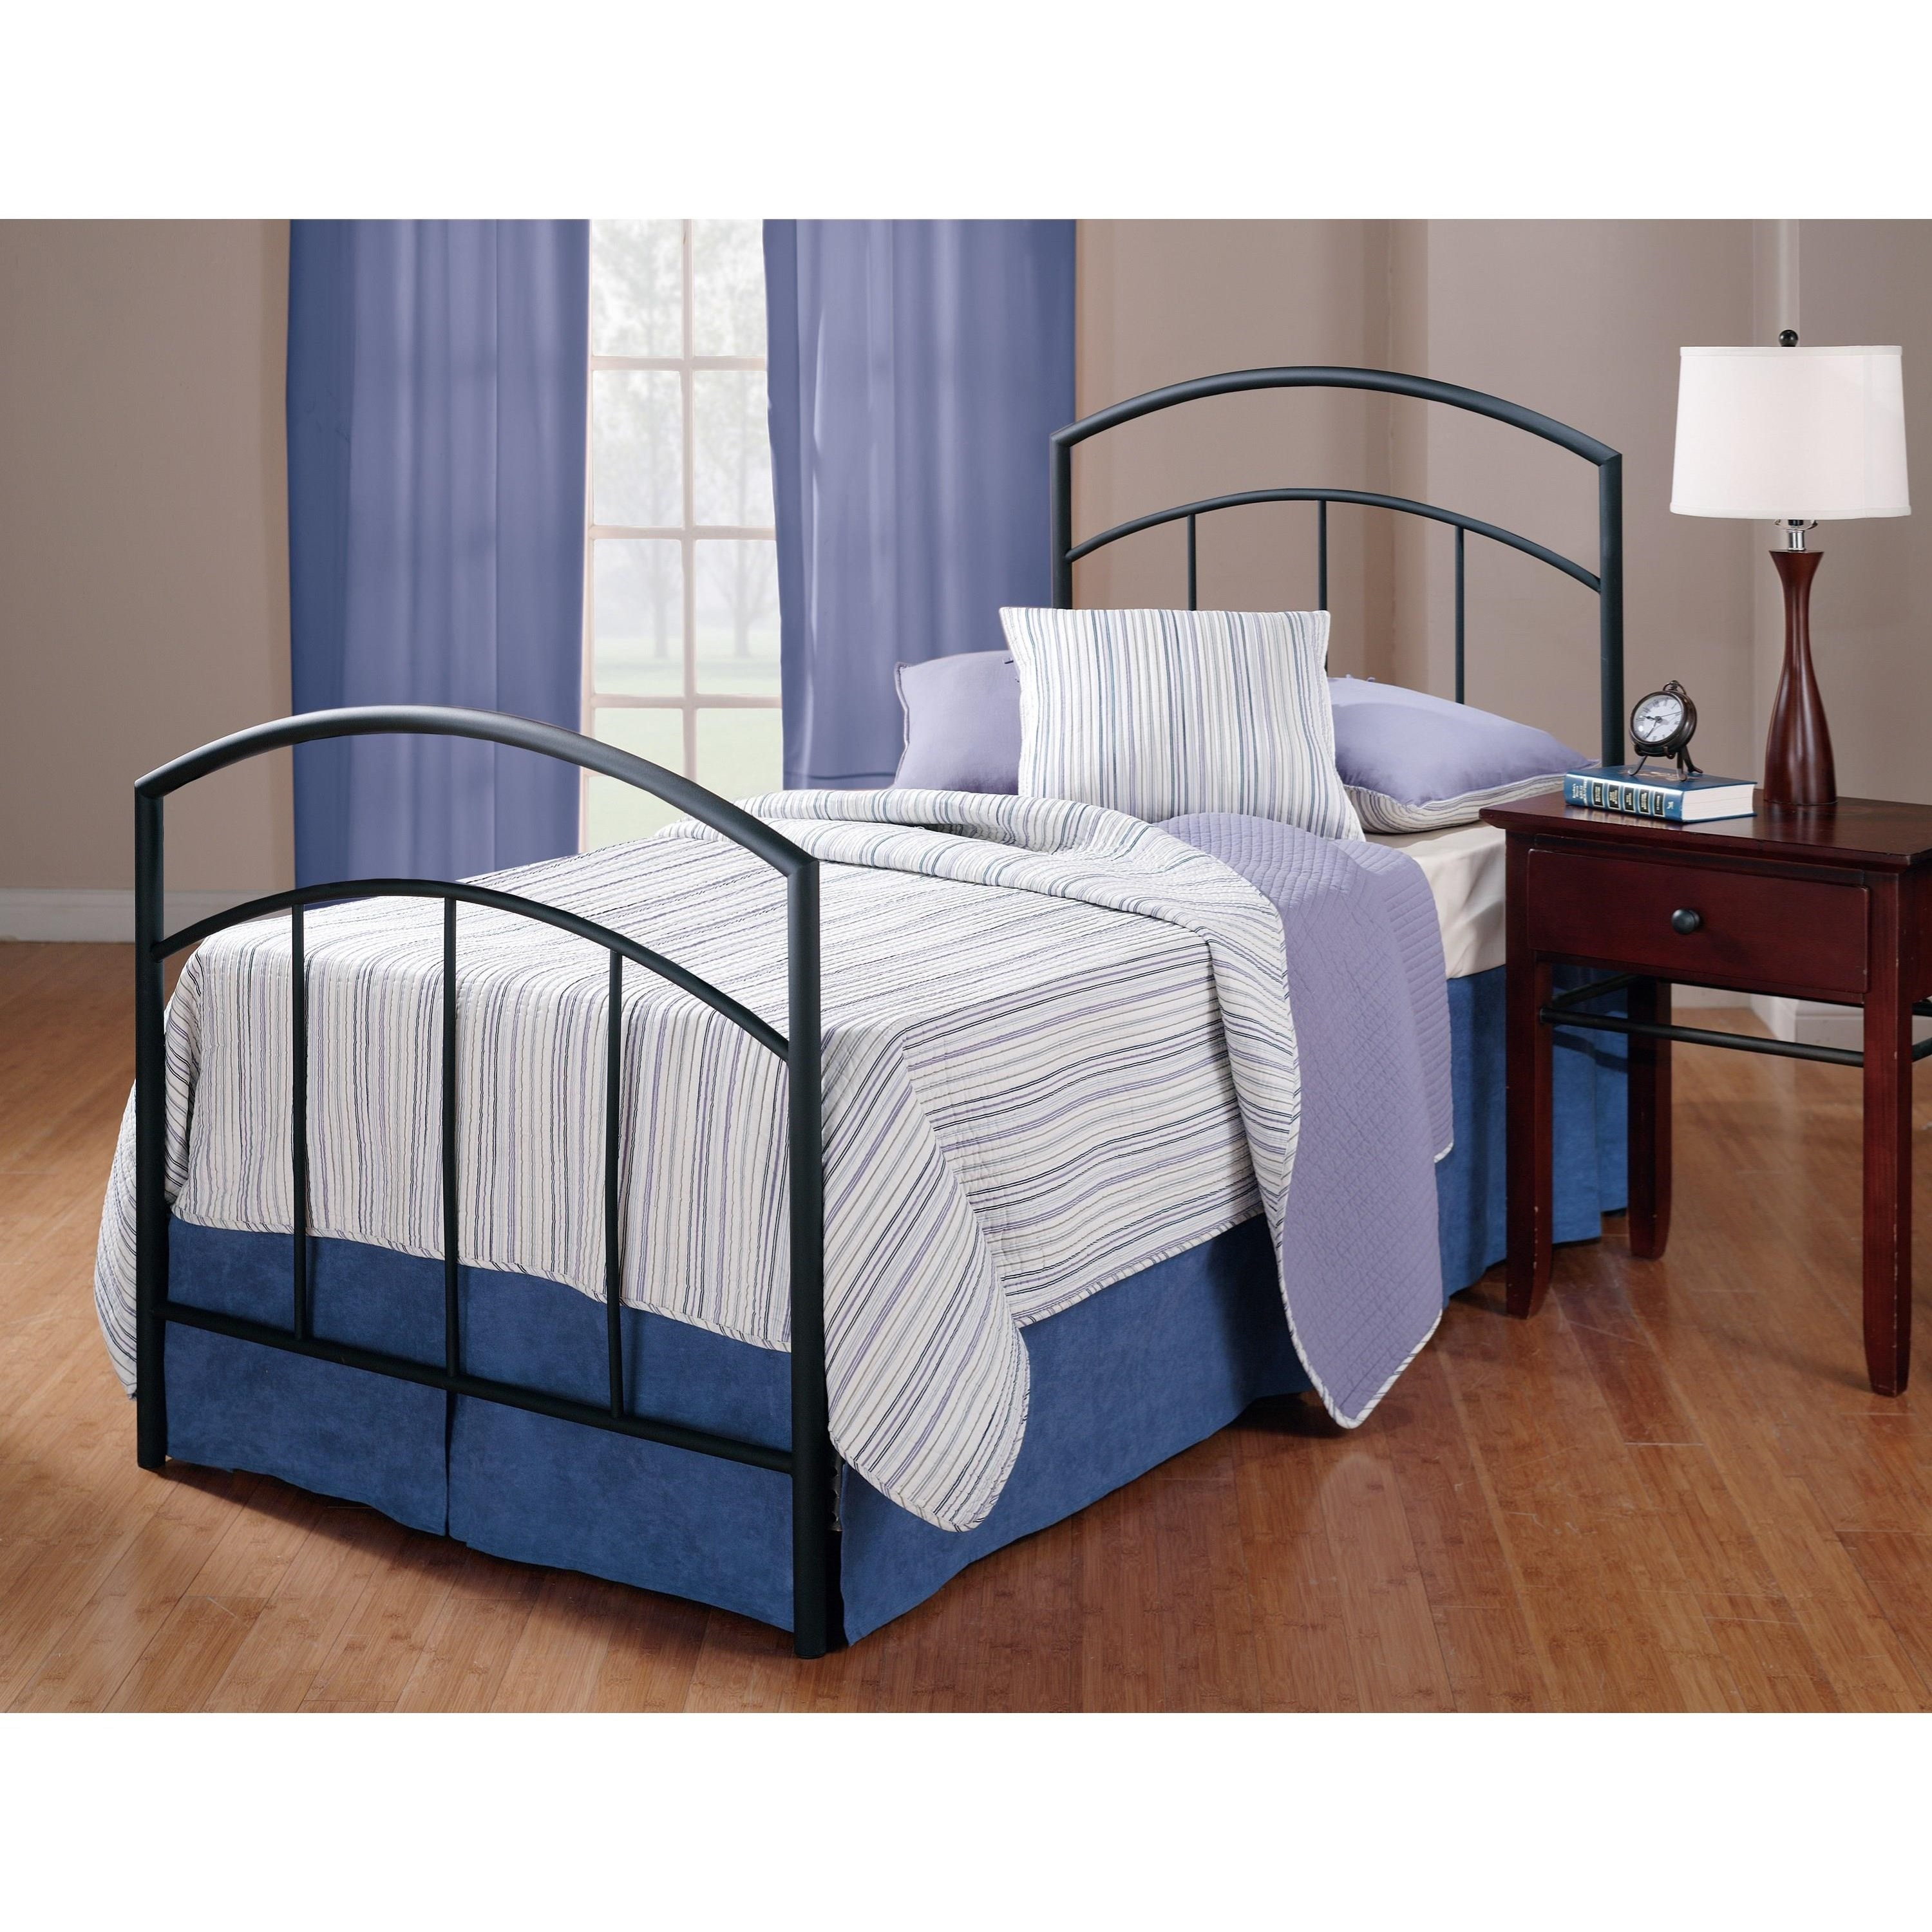 Metal Beds Twin Bed Set with Rails by Hillsdale at Steger's Furniture